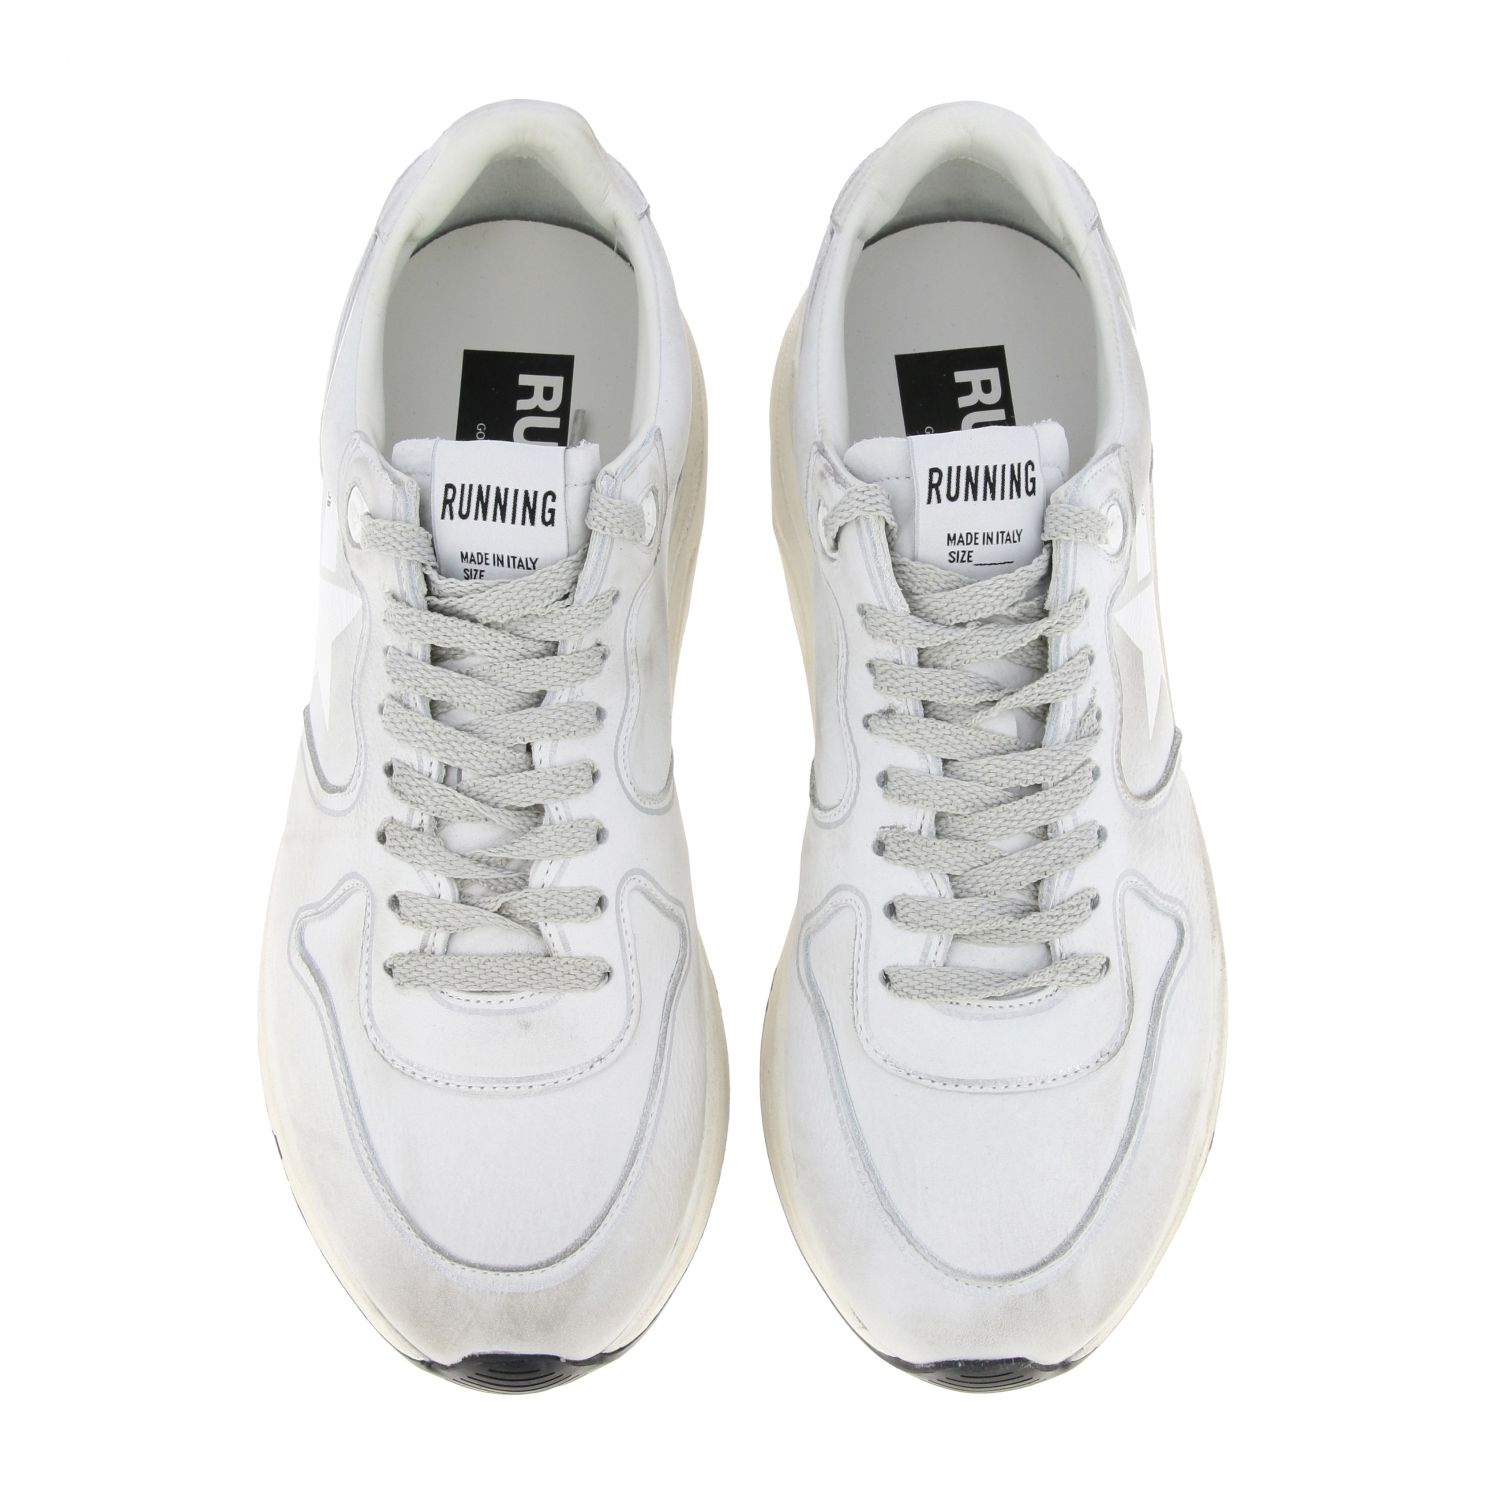 Sneakers Running sole Golden Goose in pelle used bianco 3